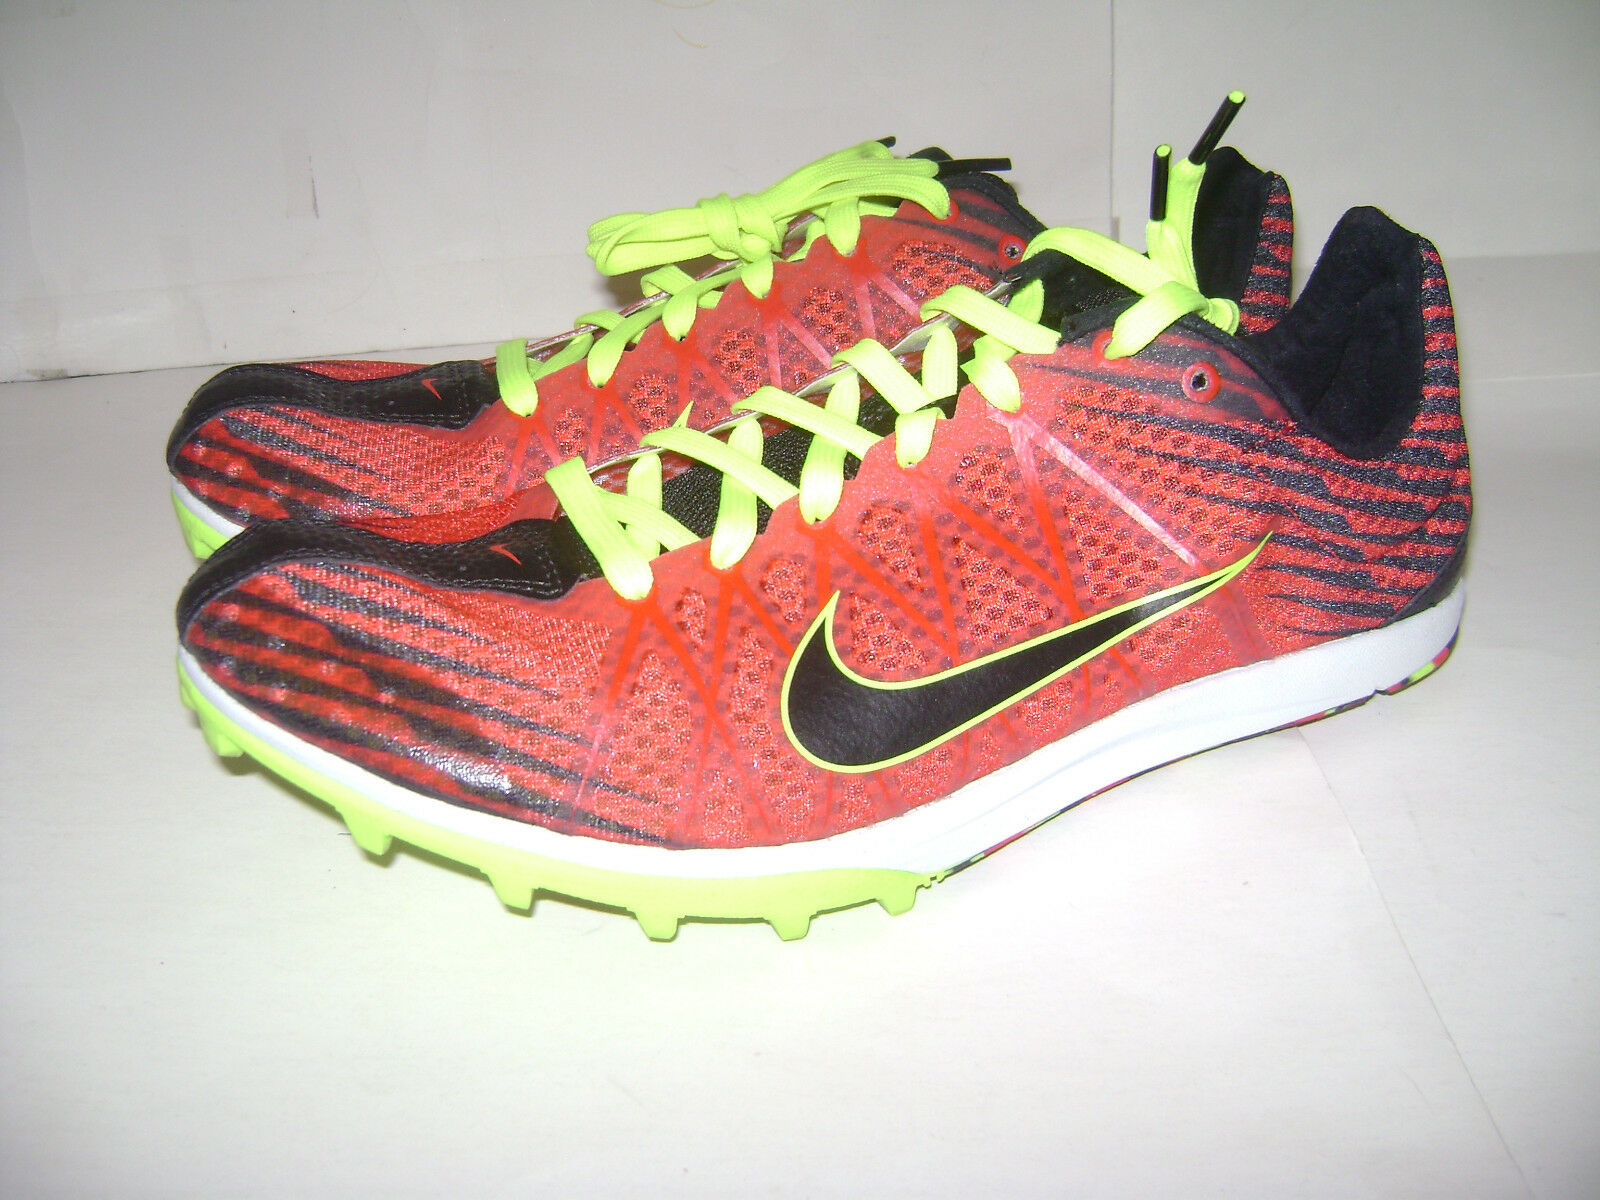 NIKE MEN MENS MENS MENS TRACK and FIELD RUNNING SHOES size 9 M RED BLACK NEON 526316 607 fcad98